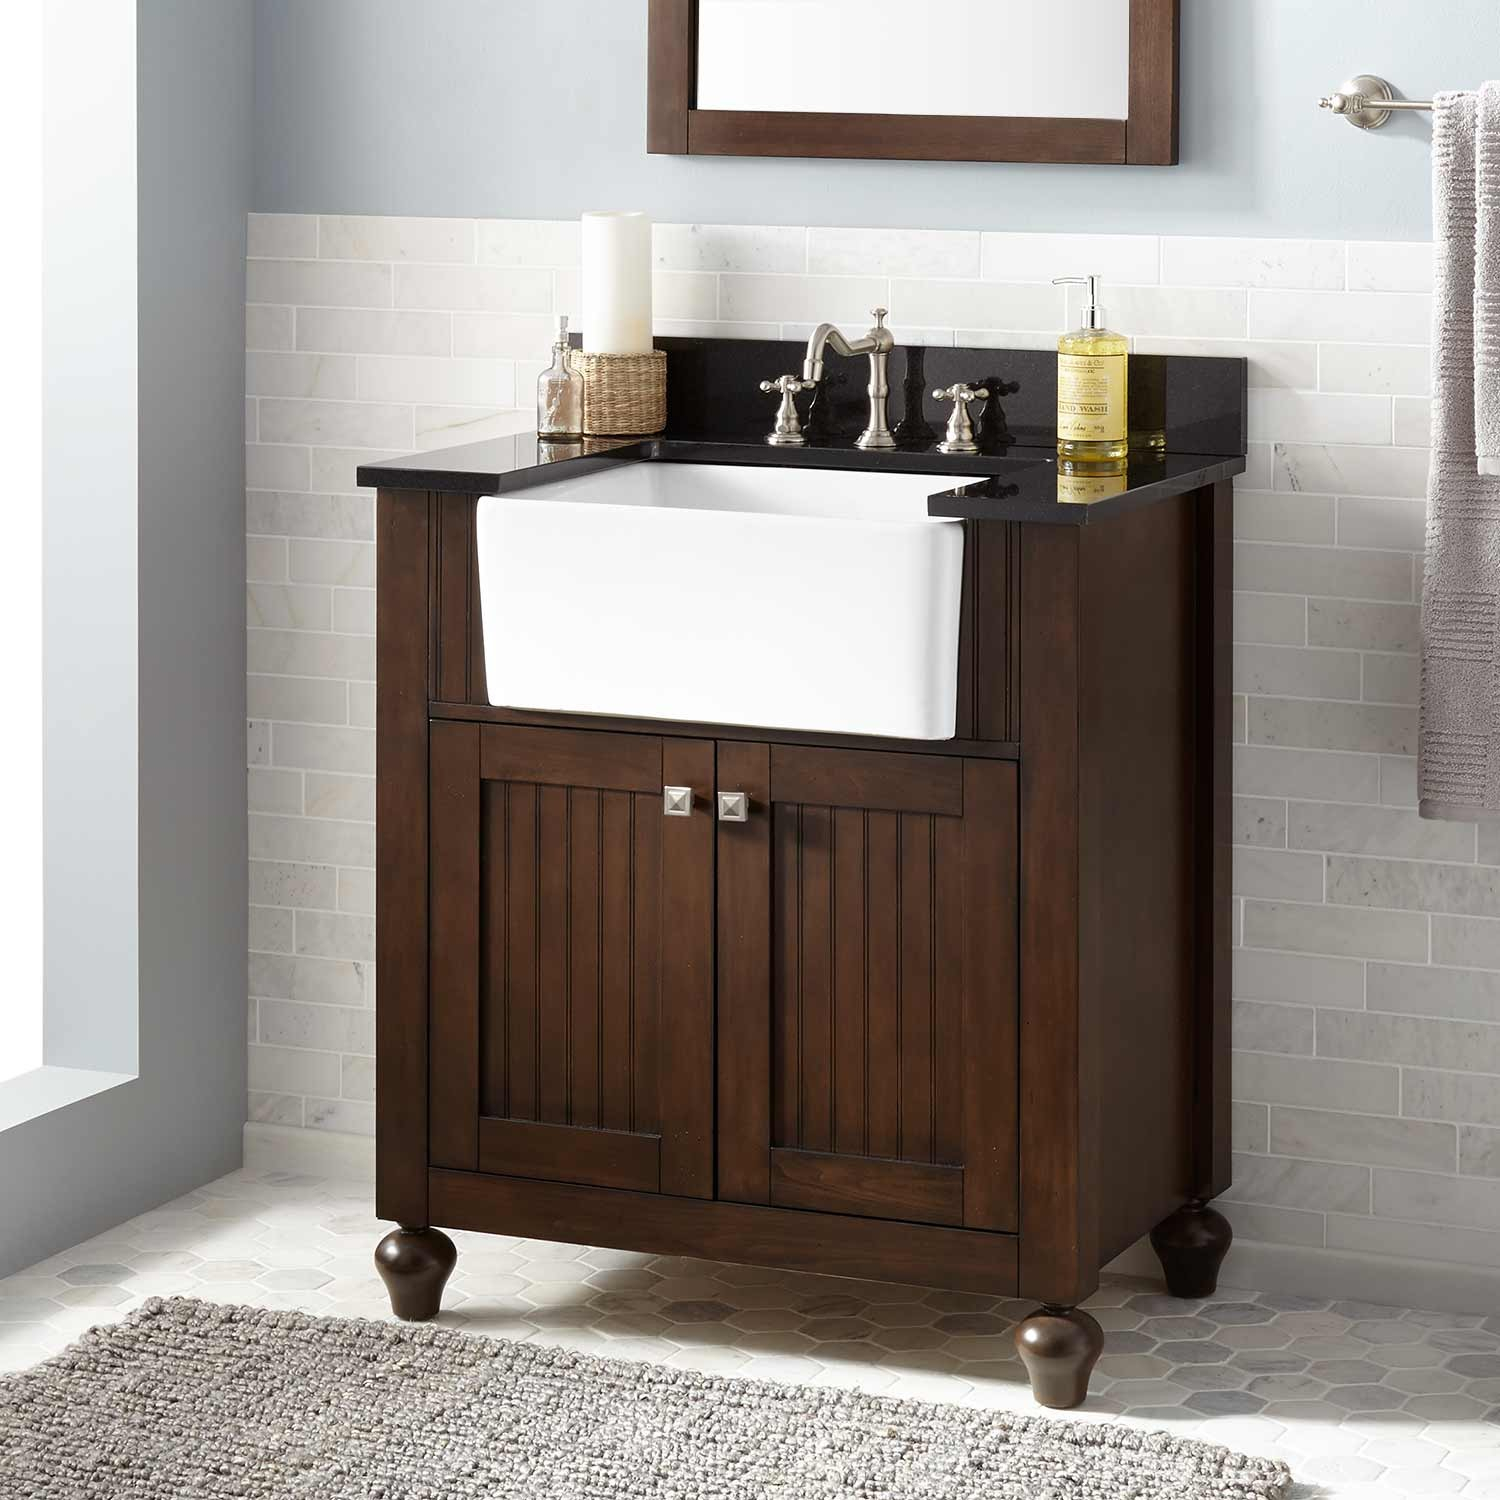 "Inspirational 30"" Nellie Farmhouse Sink Vanity - Antique Coffee - Bathroom in Good quality Bathroom Farm Sink Vanity"